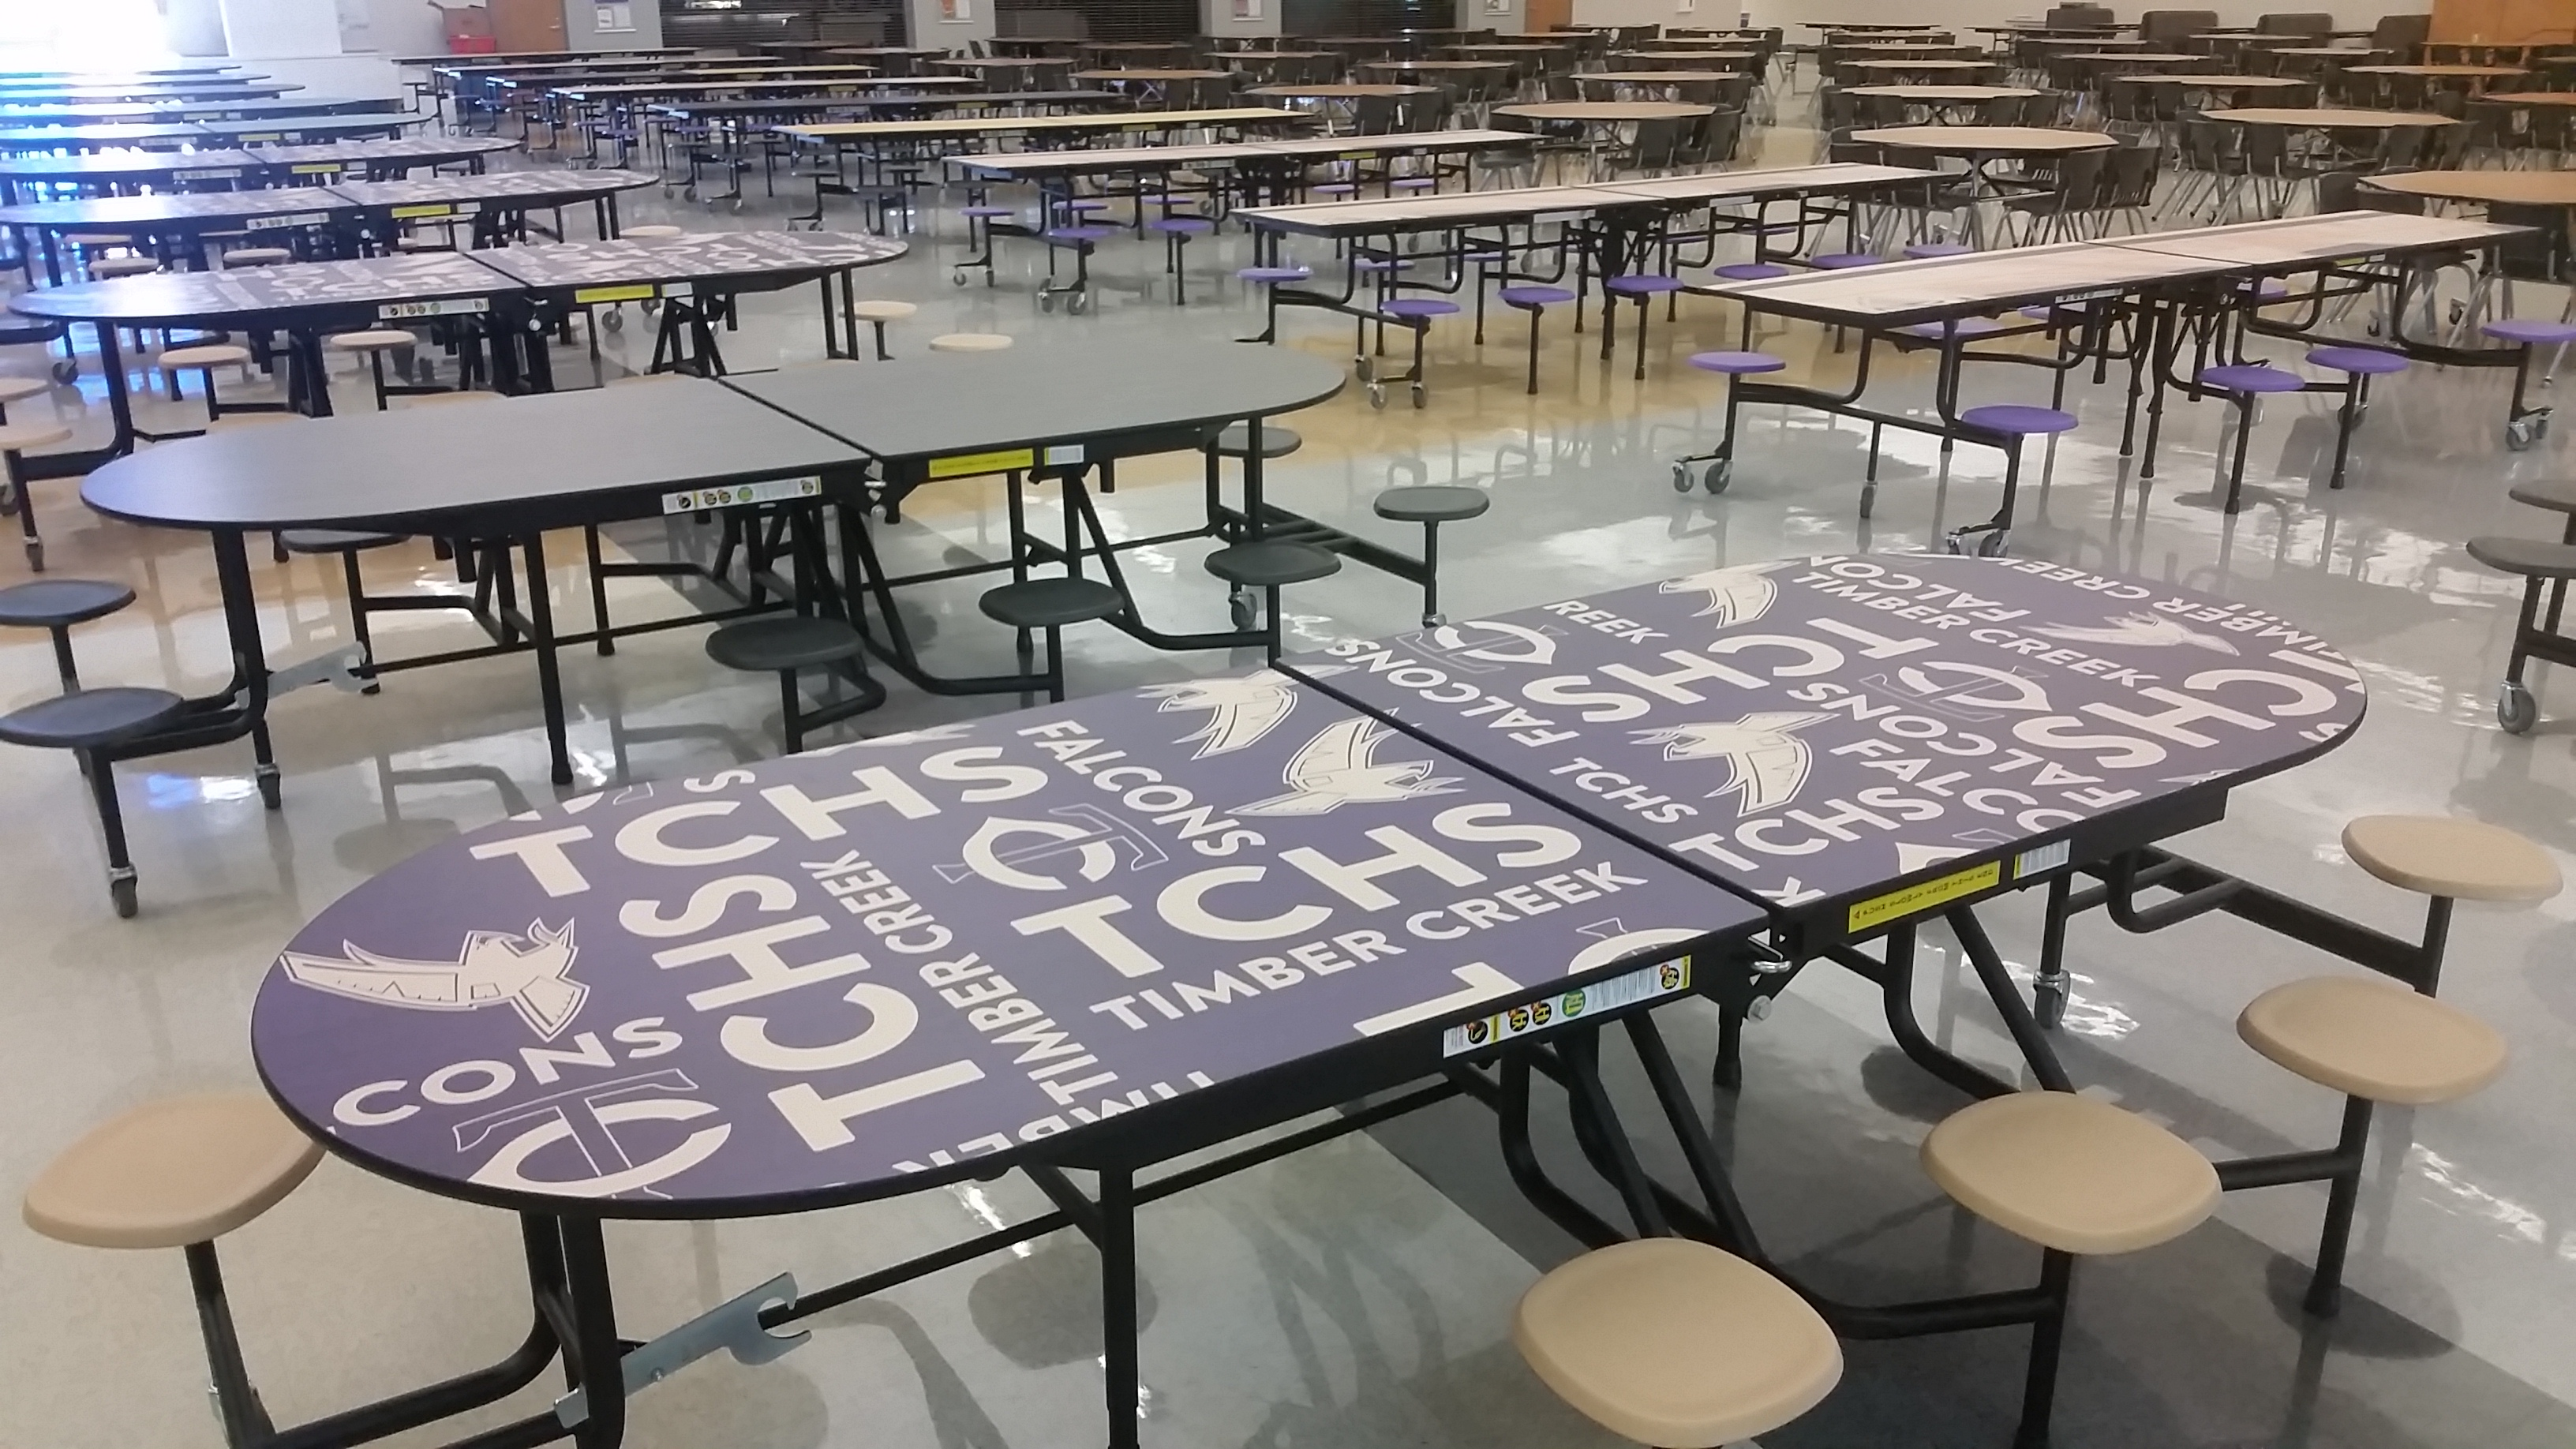 Outdoor school lunch table - Timber Creek High School Students Have Seen Many Colorful Improvements As They Start The School Year